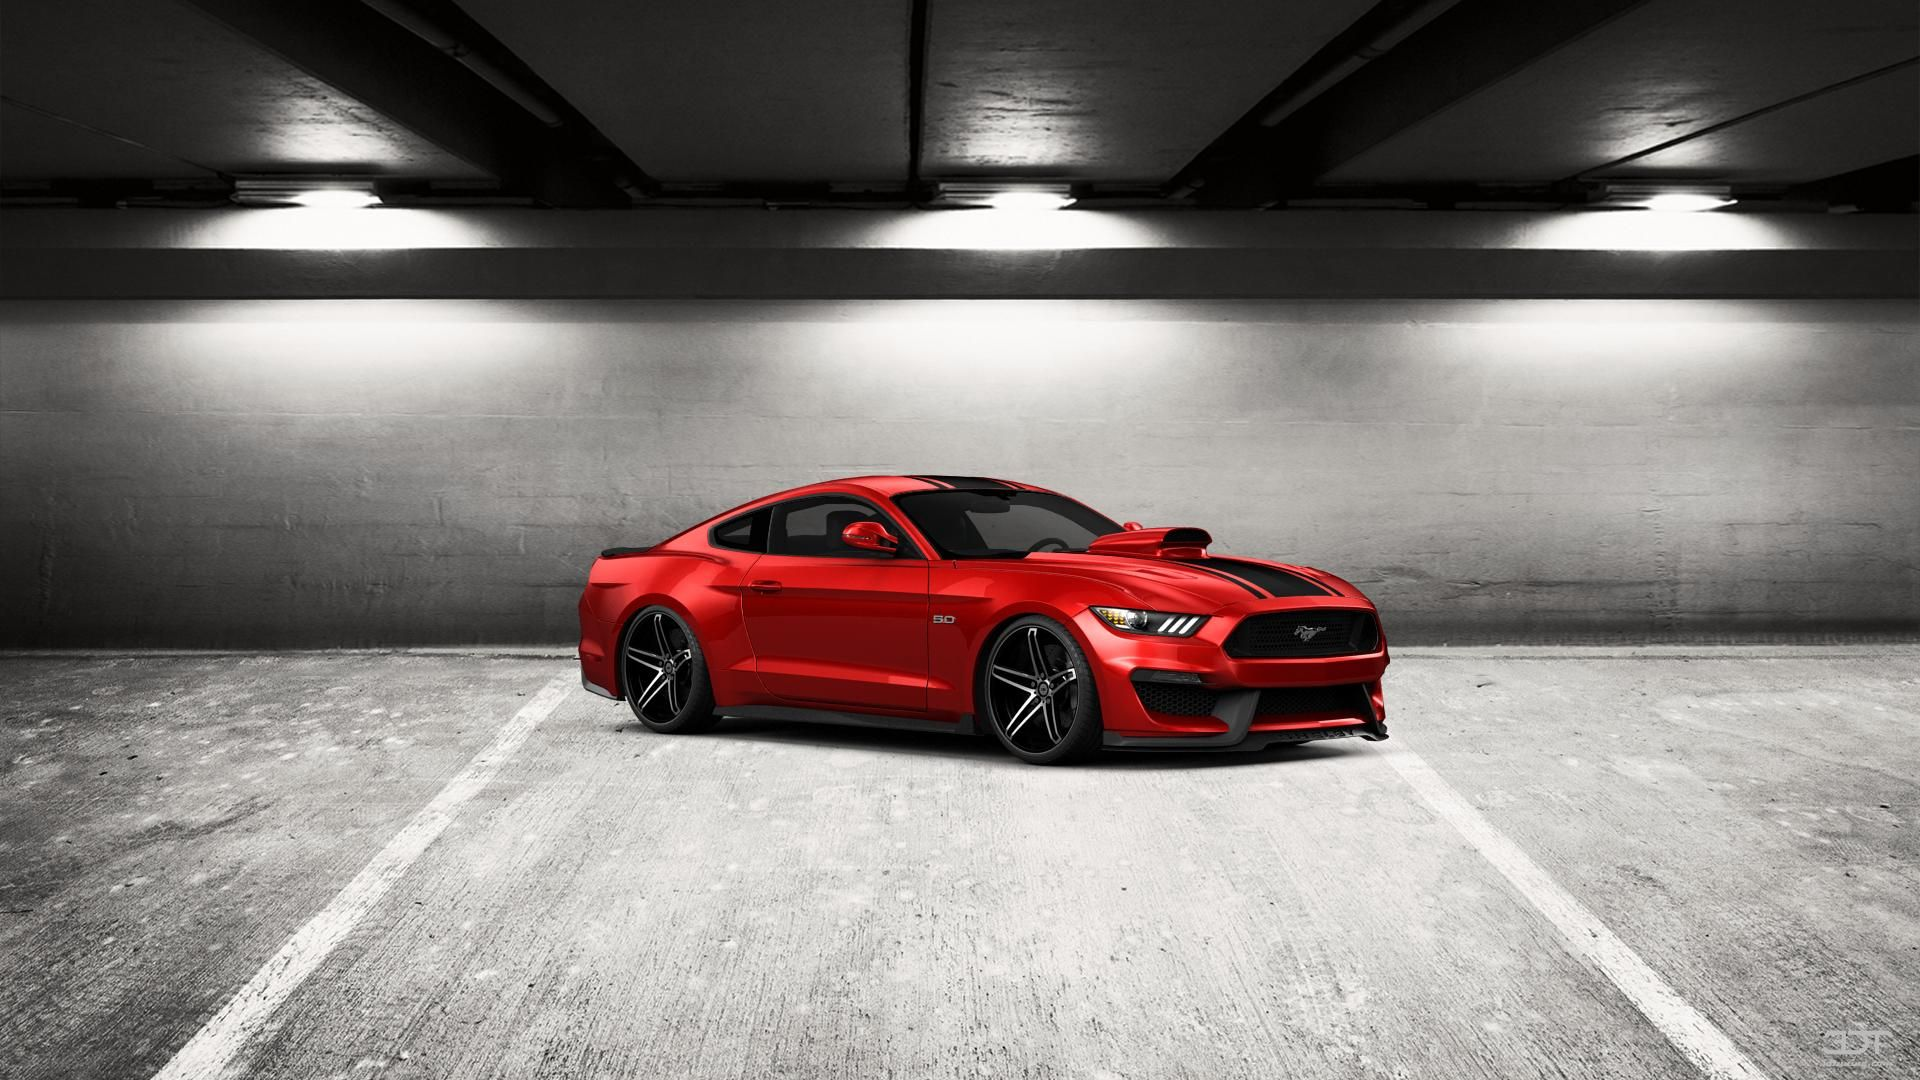 Come ti sembra il mio tuning #Mustang #GT 2015 in 3DTuning #3dtuning #tuning